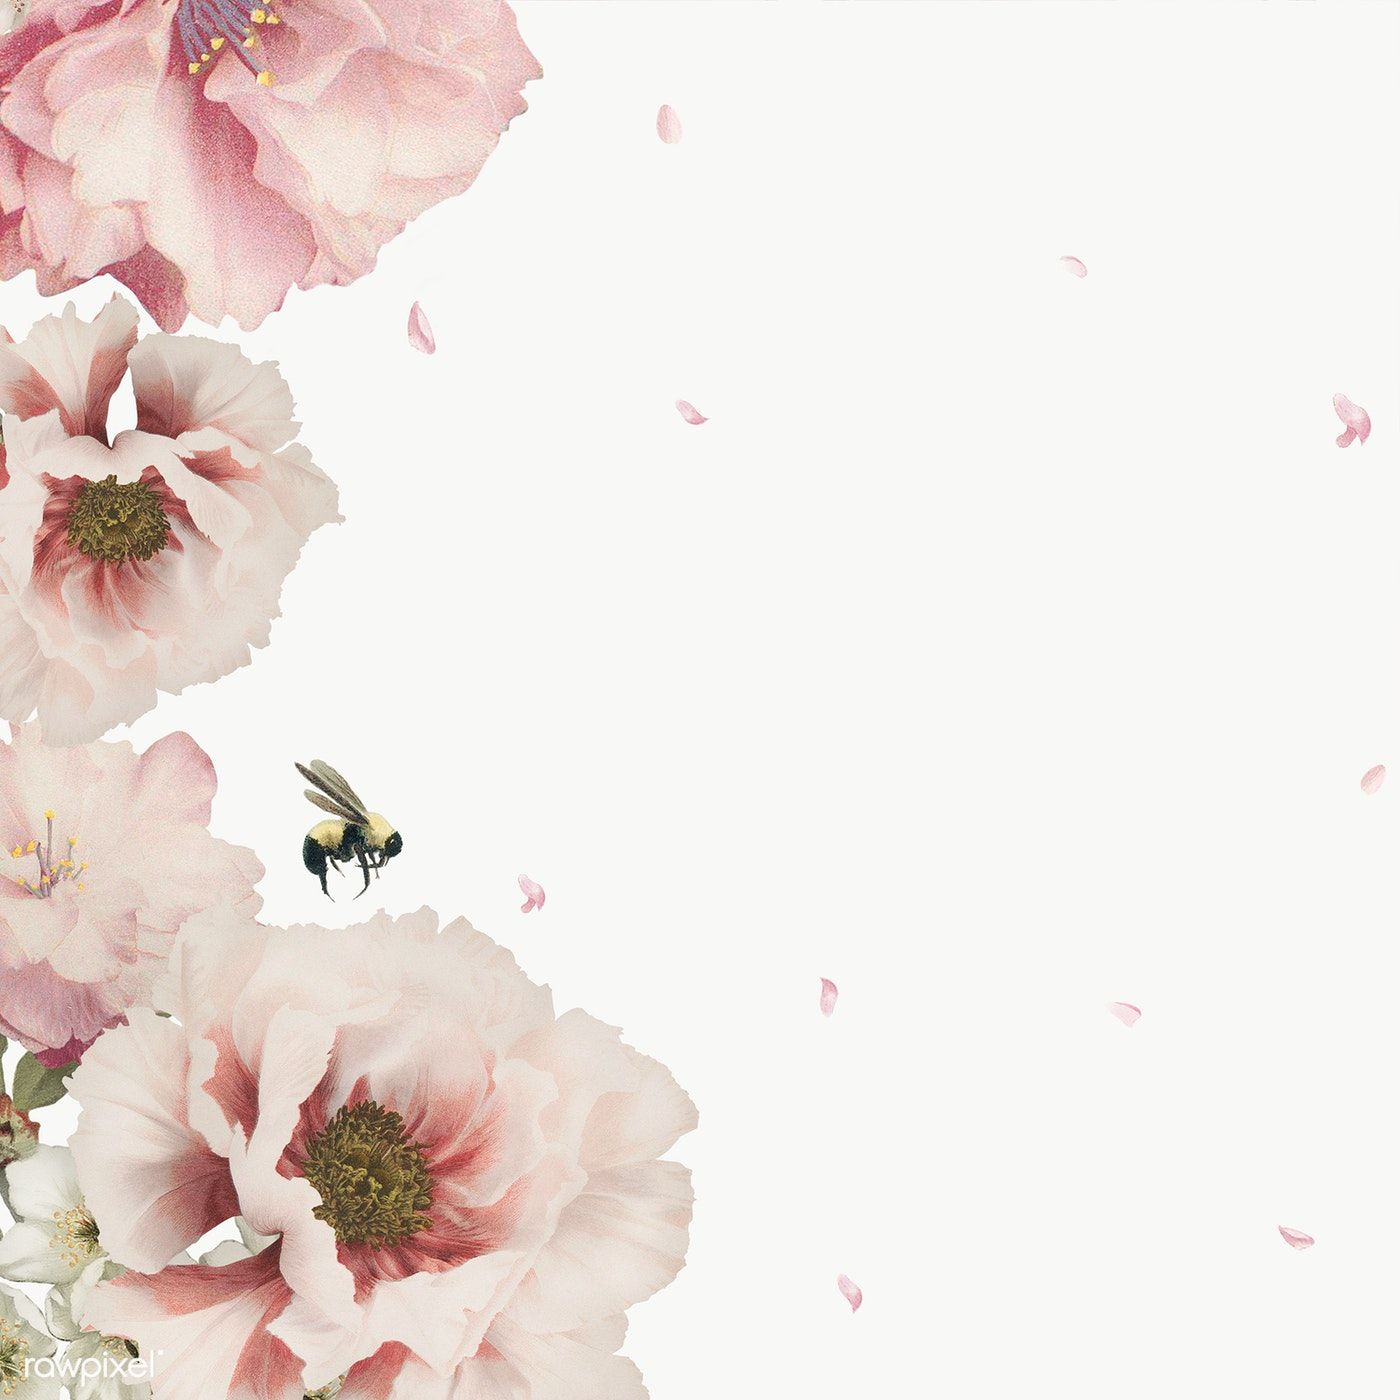 Pink Flowers Frame Transparent Png Free Image By Rawpixel Com Nam In 2020 Flower Frame White Anemone Flower Pink Flowers